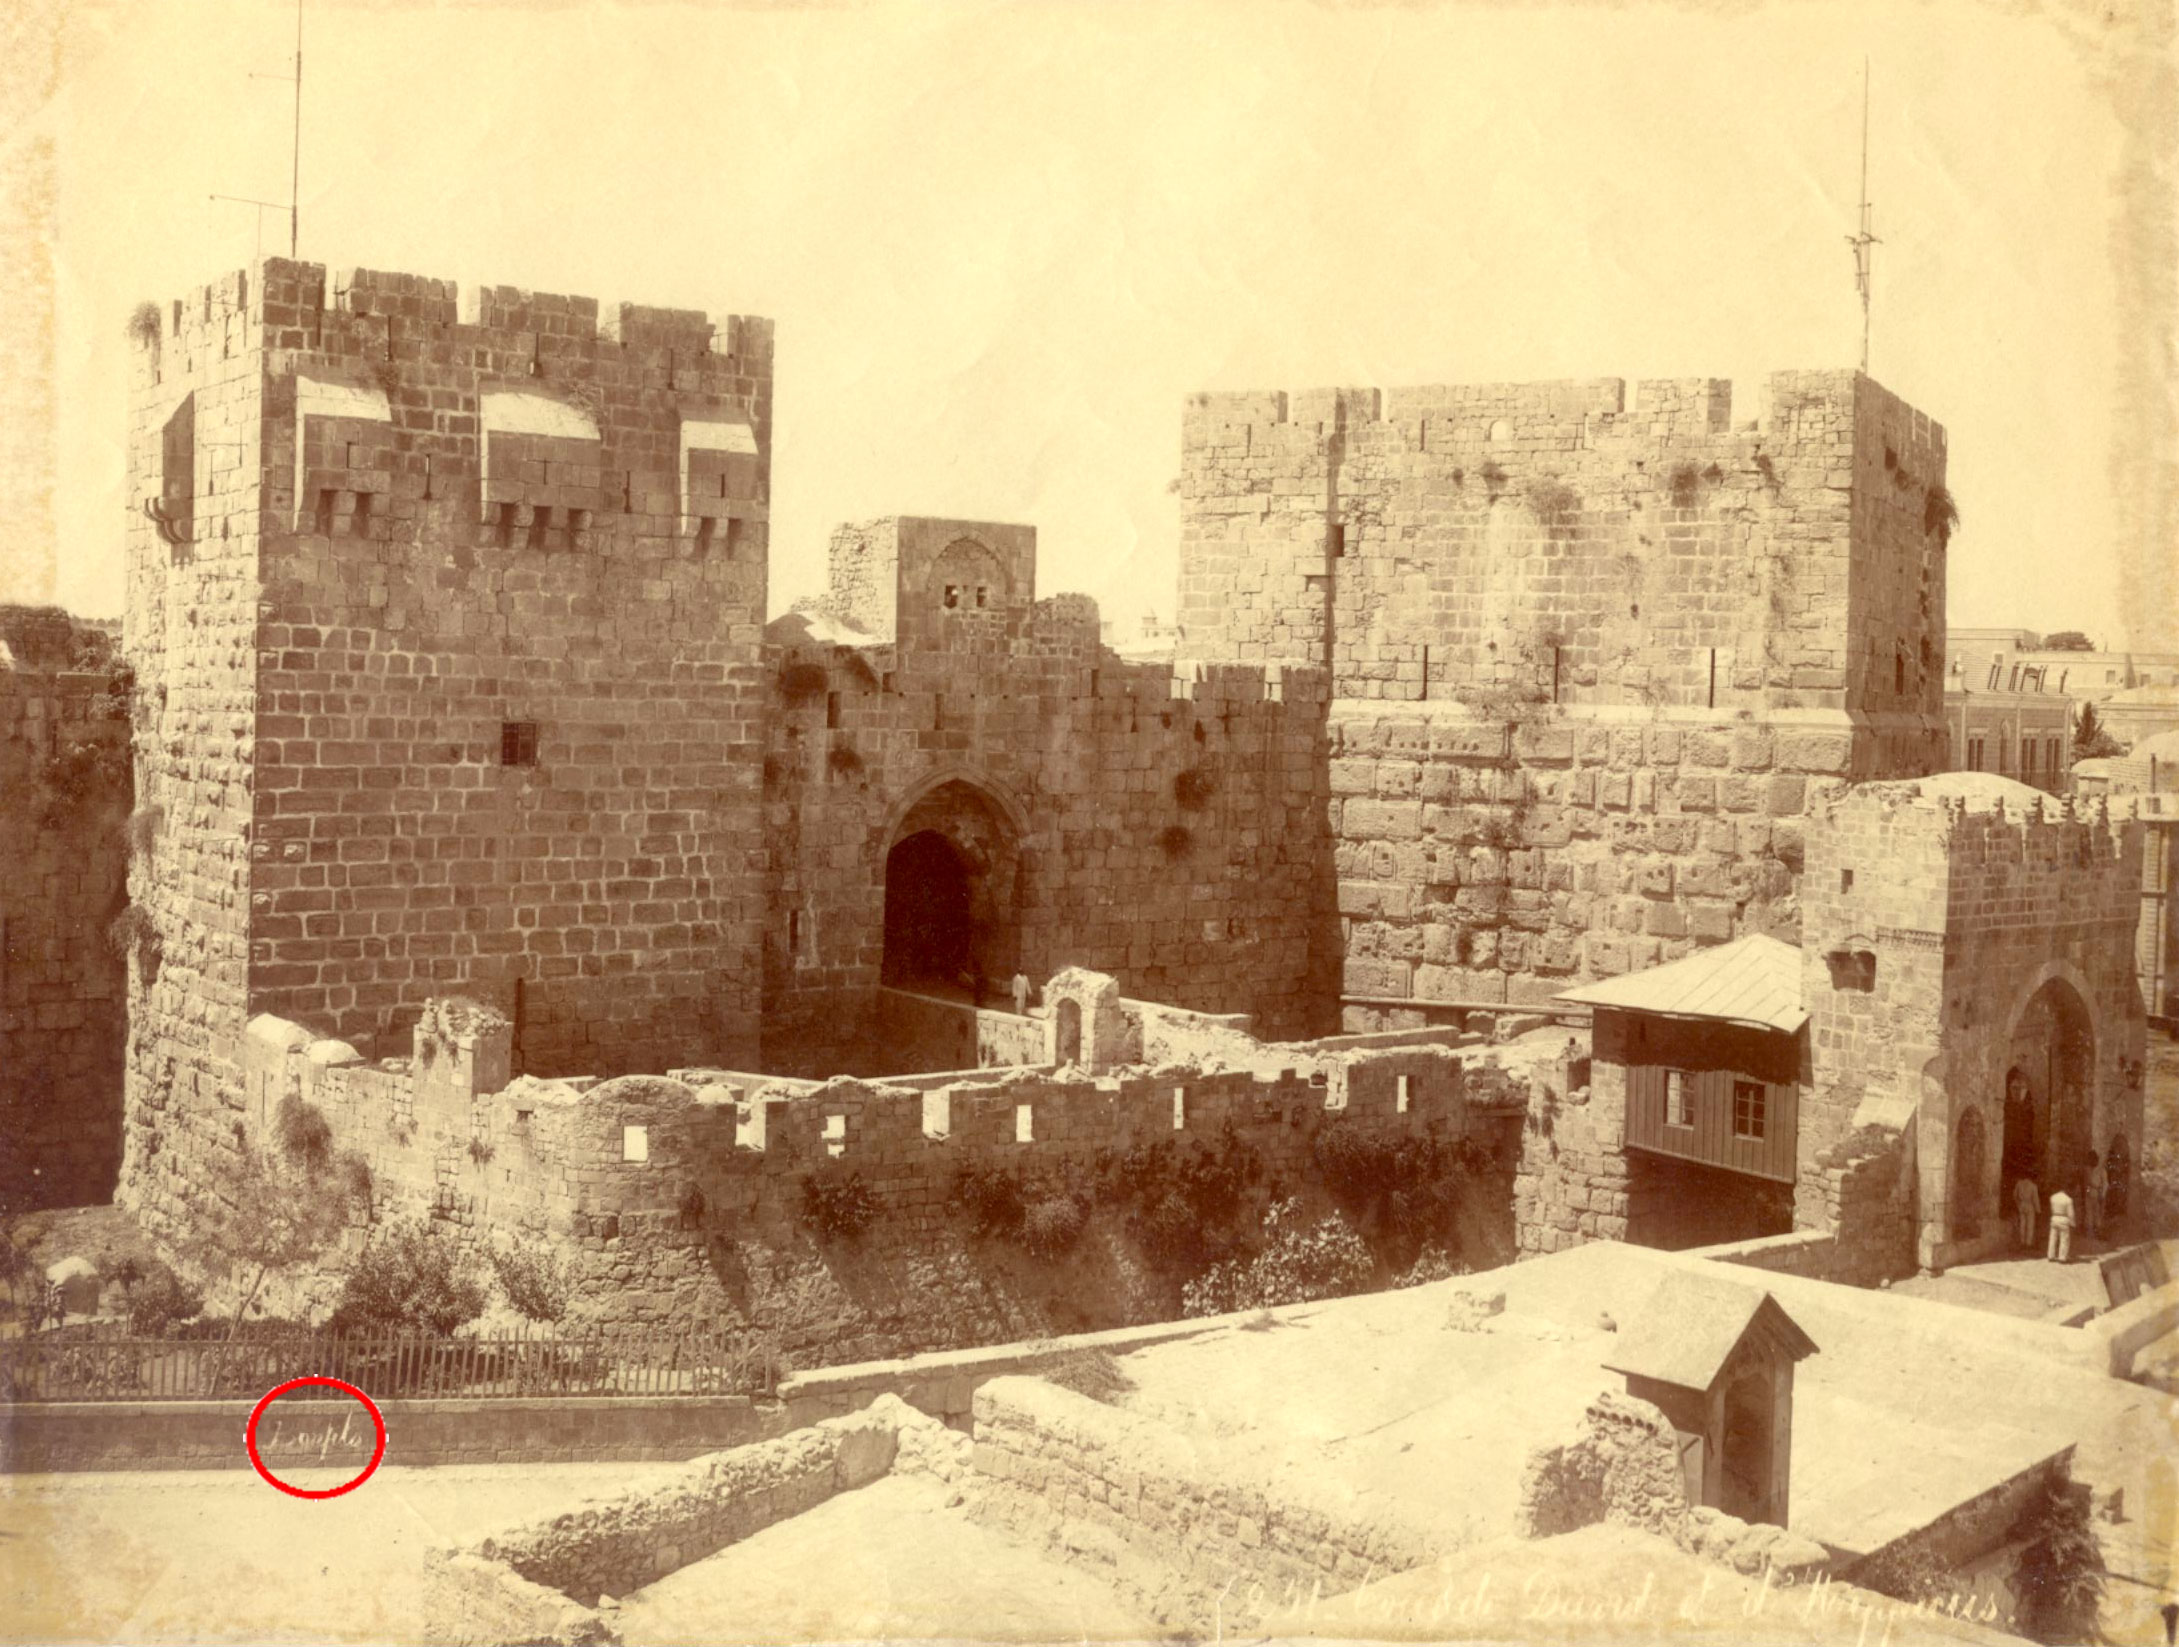 Tower of David and Hippicus by Felix Bonfils ca. 18870 - click to enlarge.